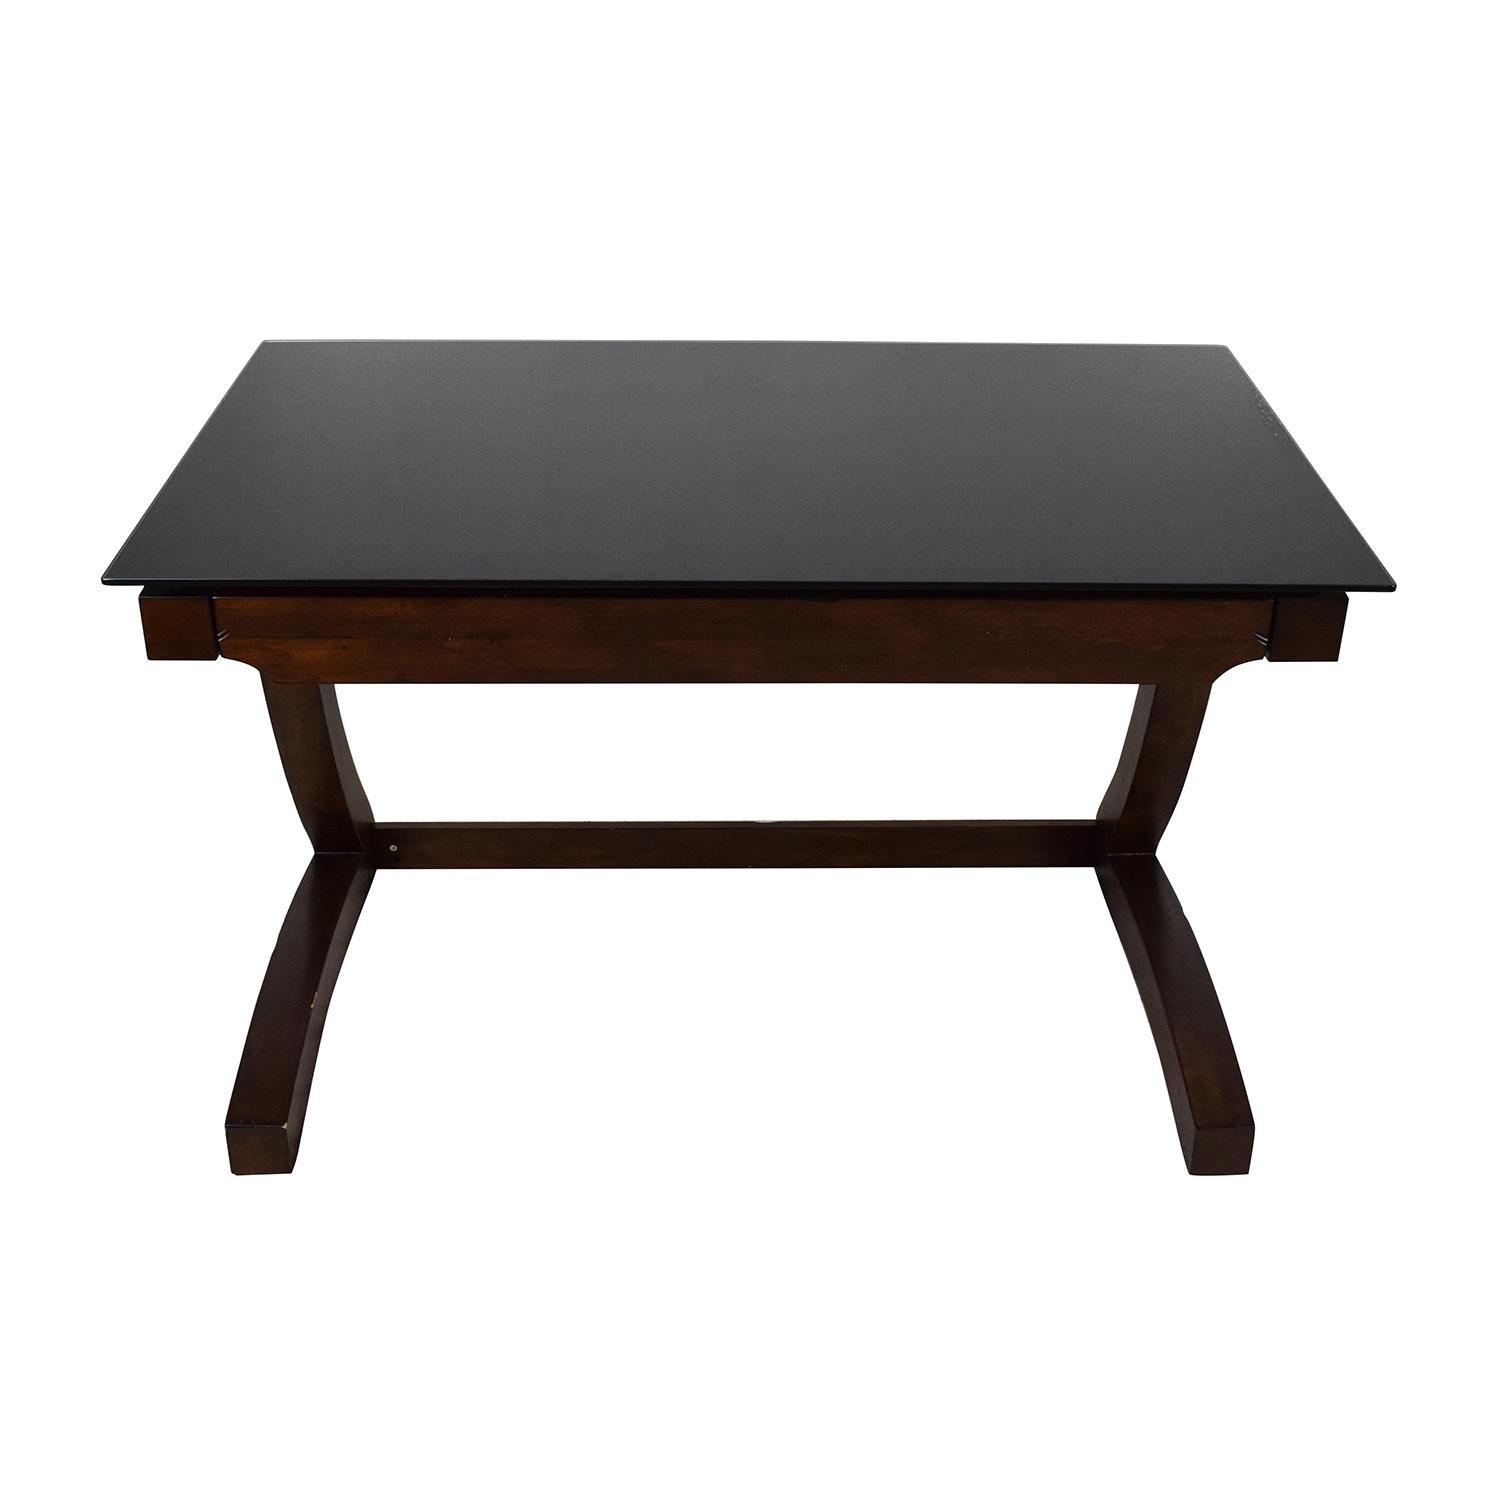 buy Raymour & Flanigan Raymour & Flanigan Innovation Computer Desk online